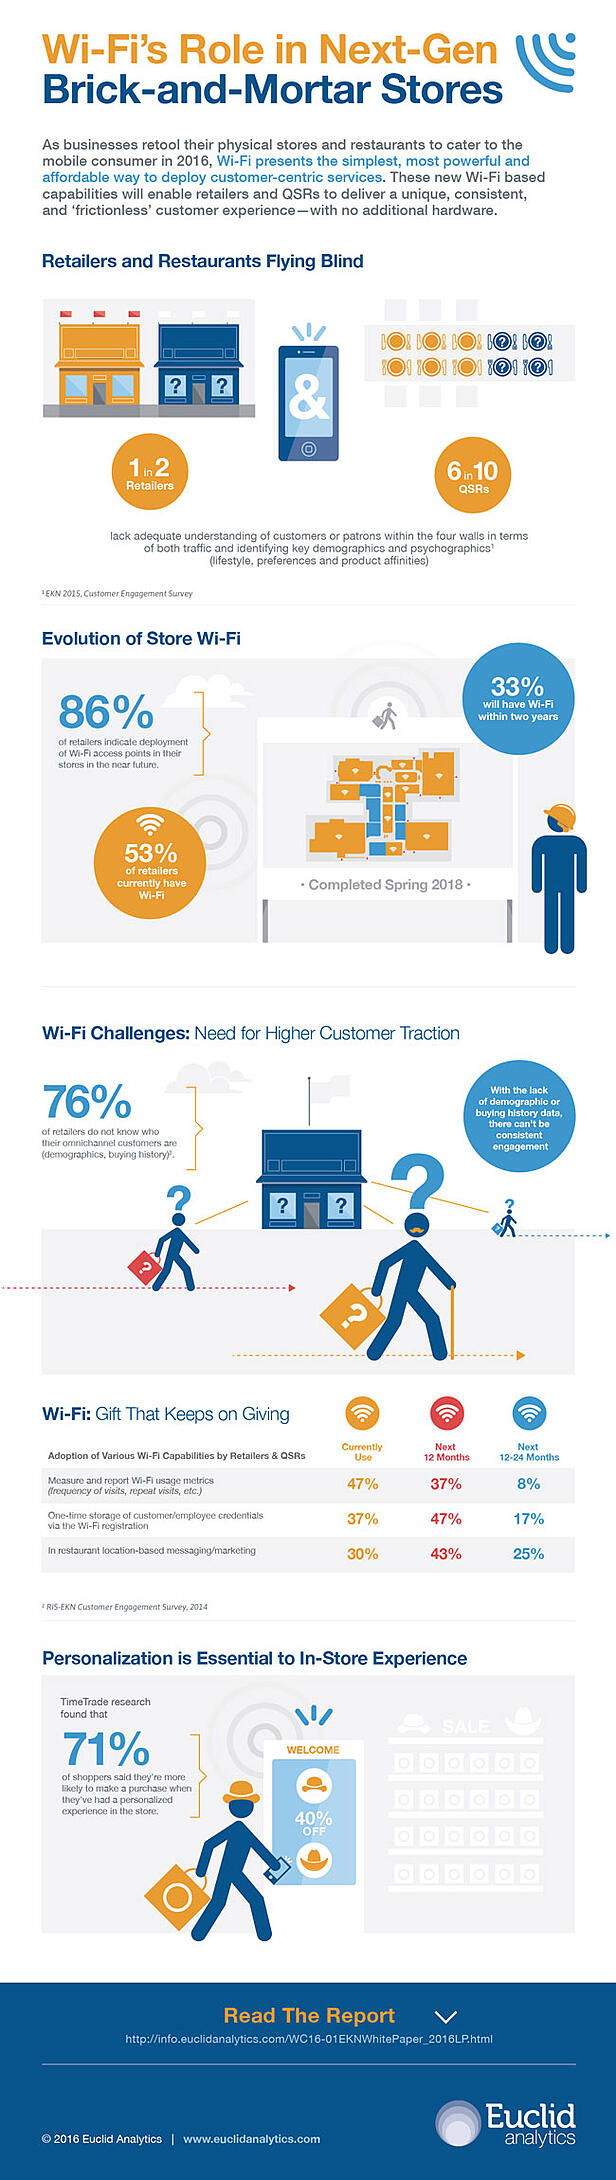 the-growing-role-of-retail-wifi-in-the-next-generation-brick-and-mortar-stores-infographic.jpg